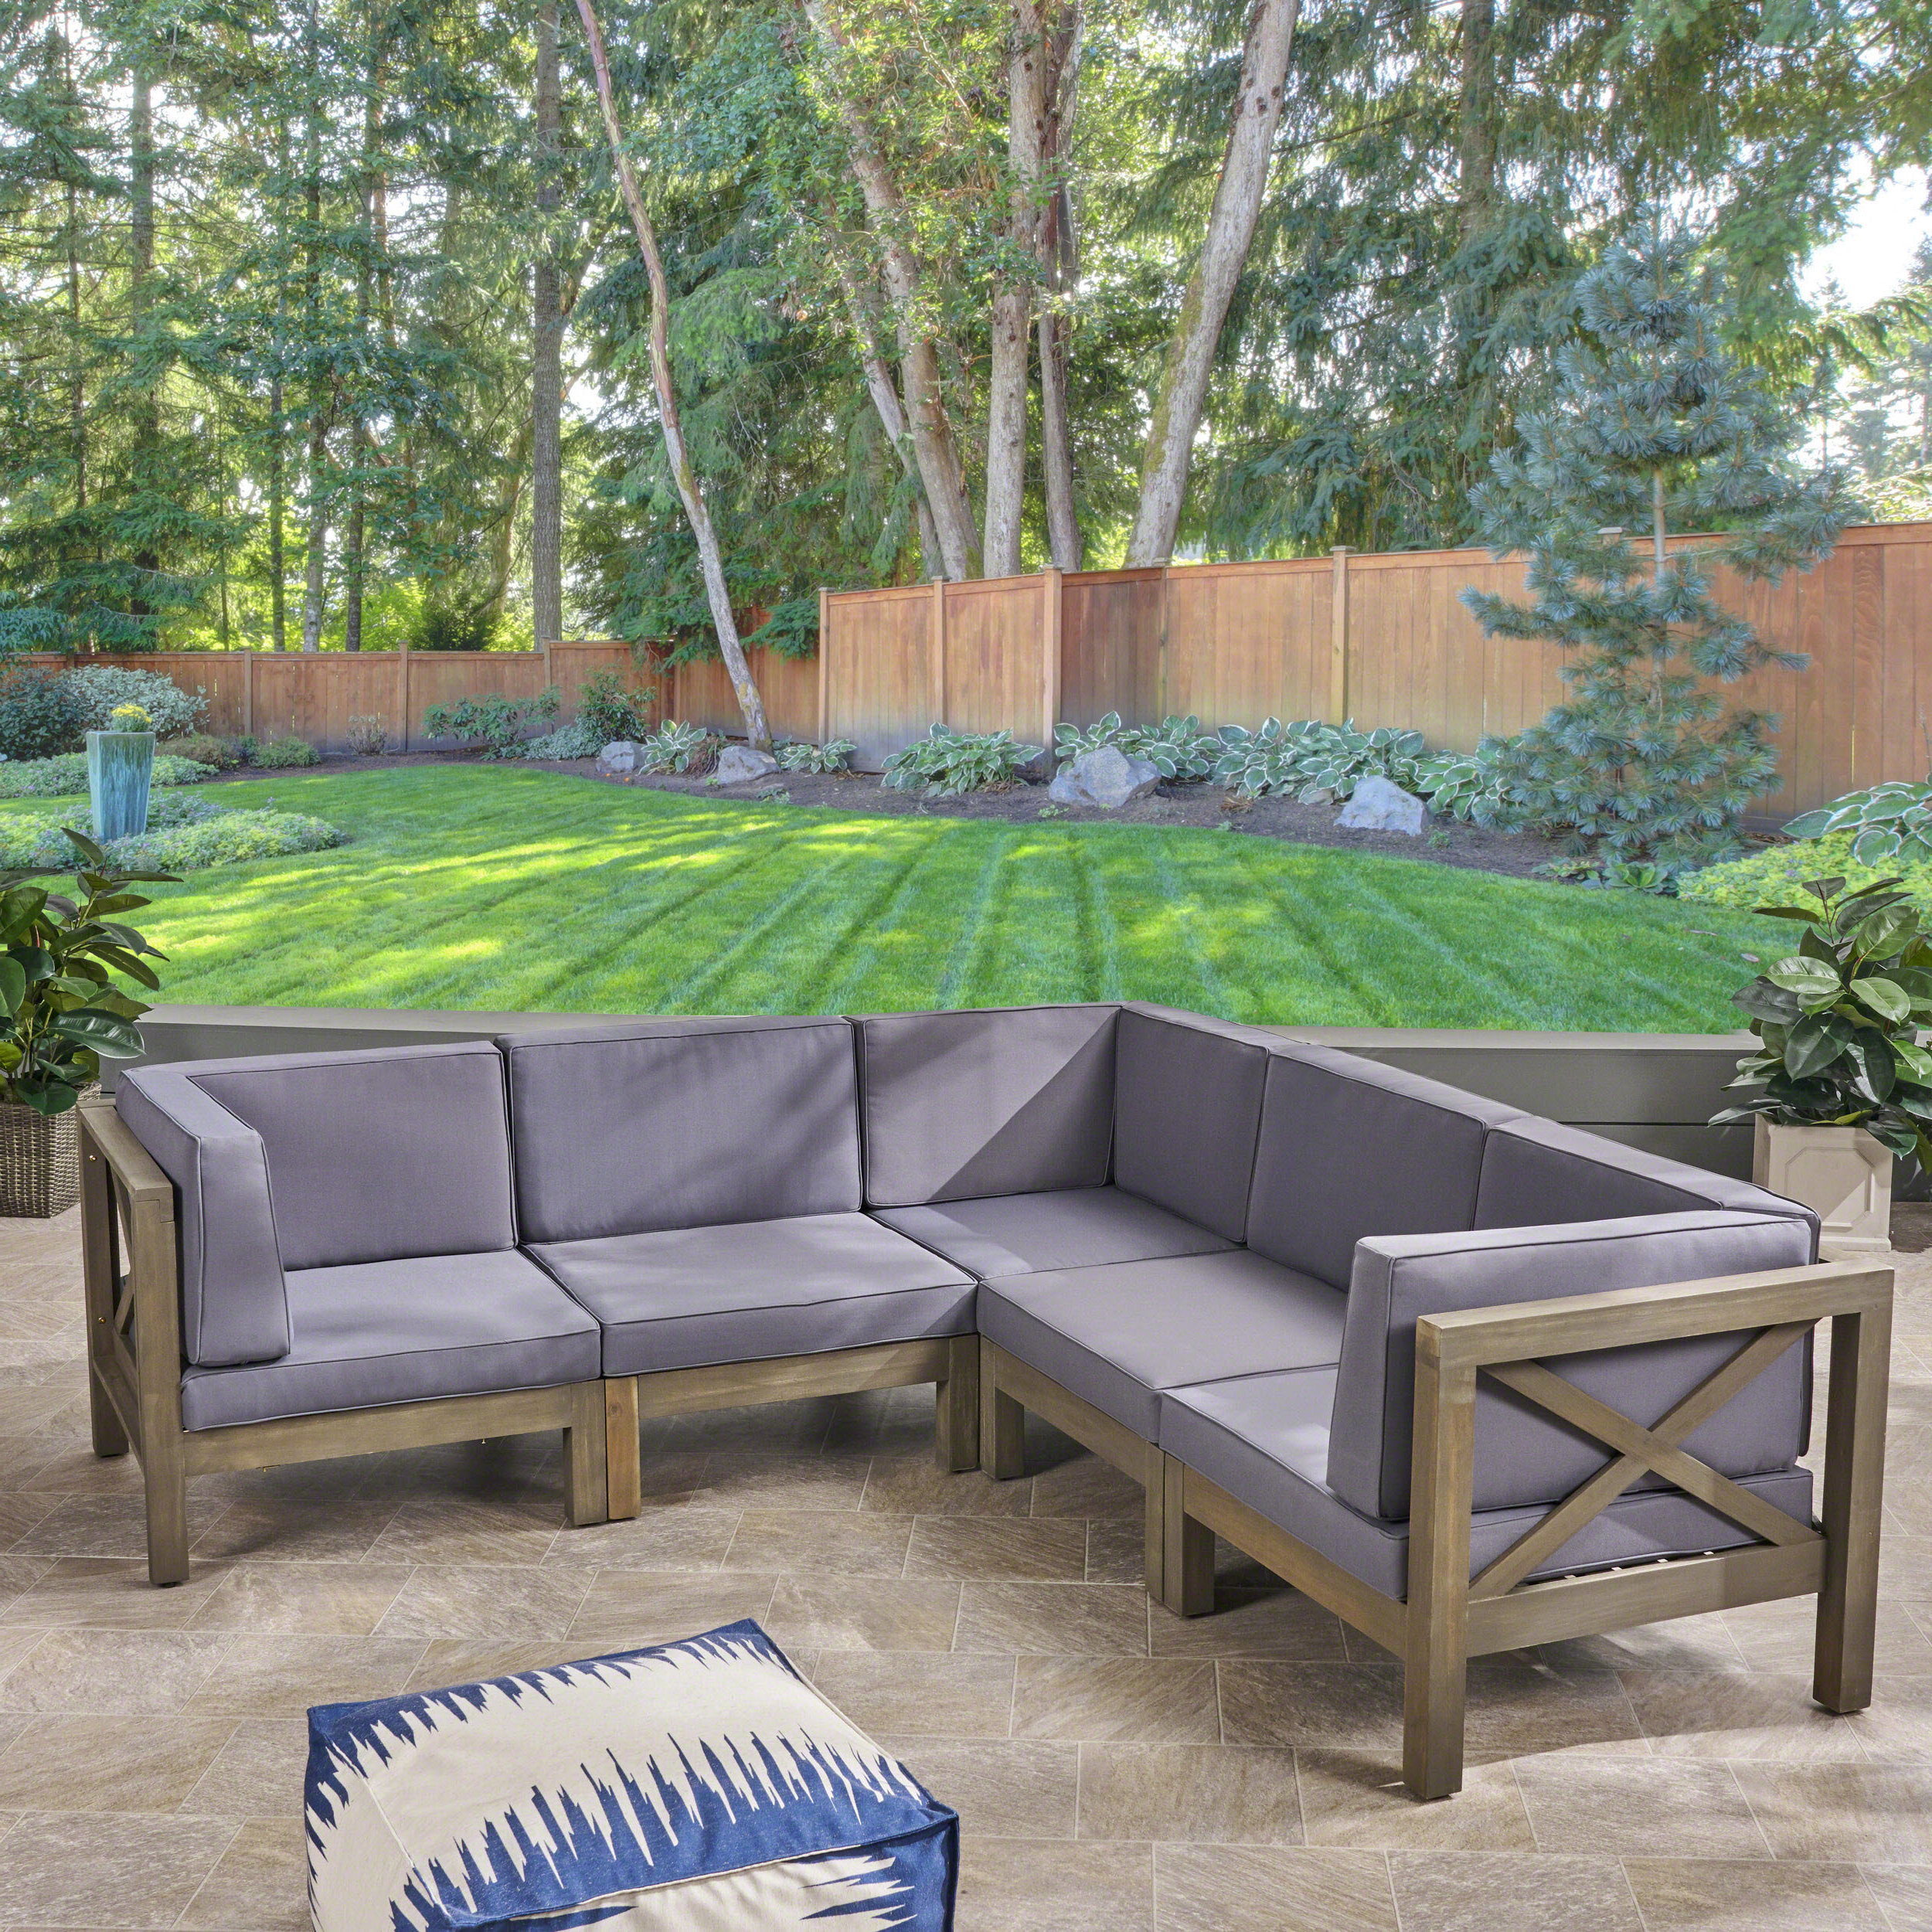 Ellison Patio Sectional With Cushions With Regard To Newest Patio Sofas With Cushions (View 4 of 20)